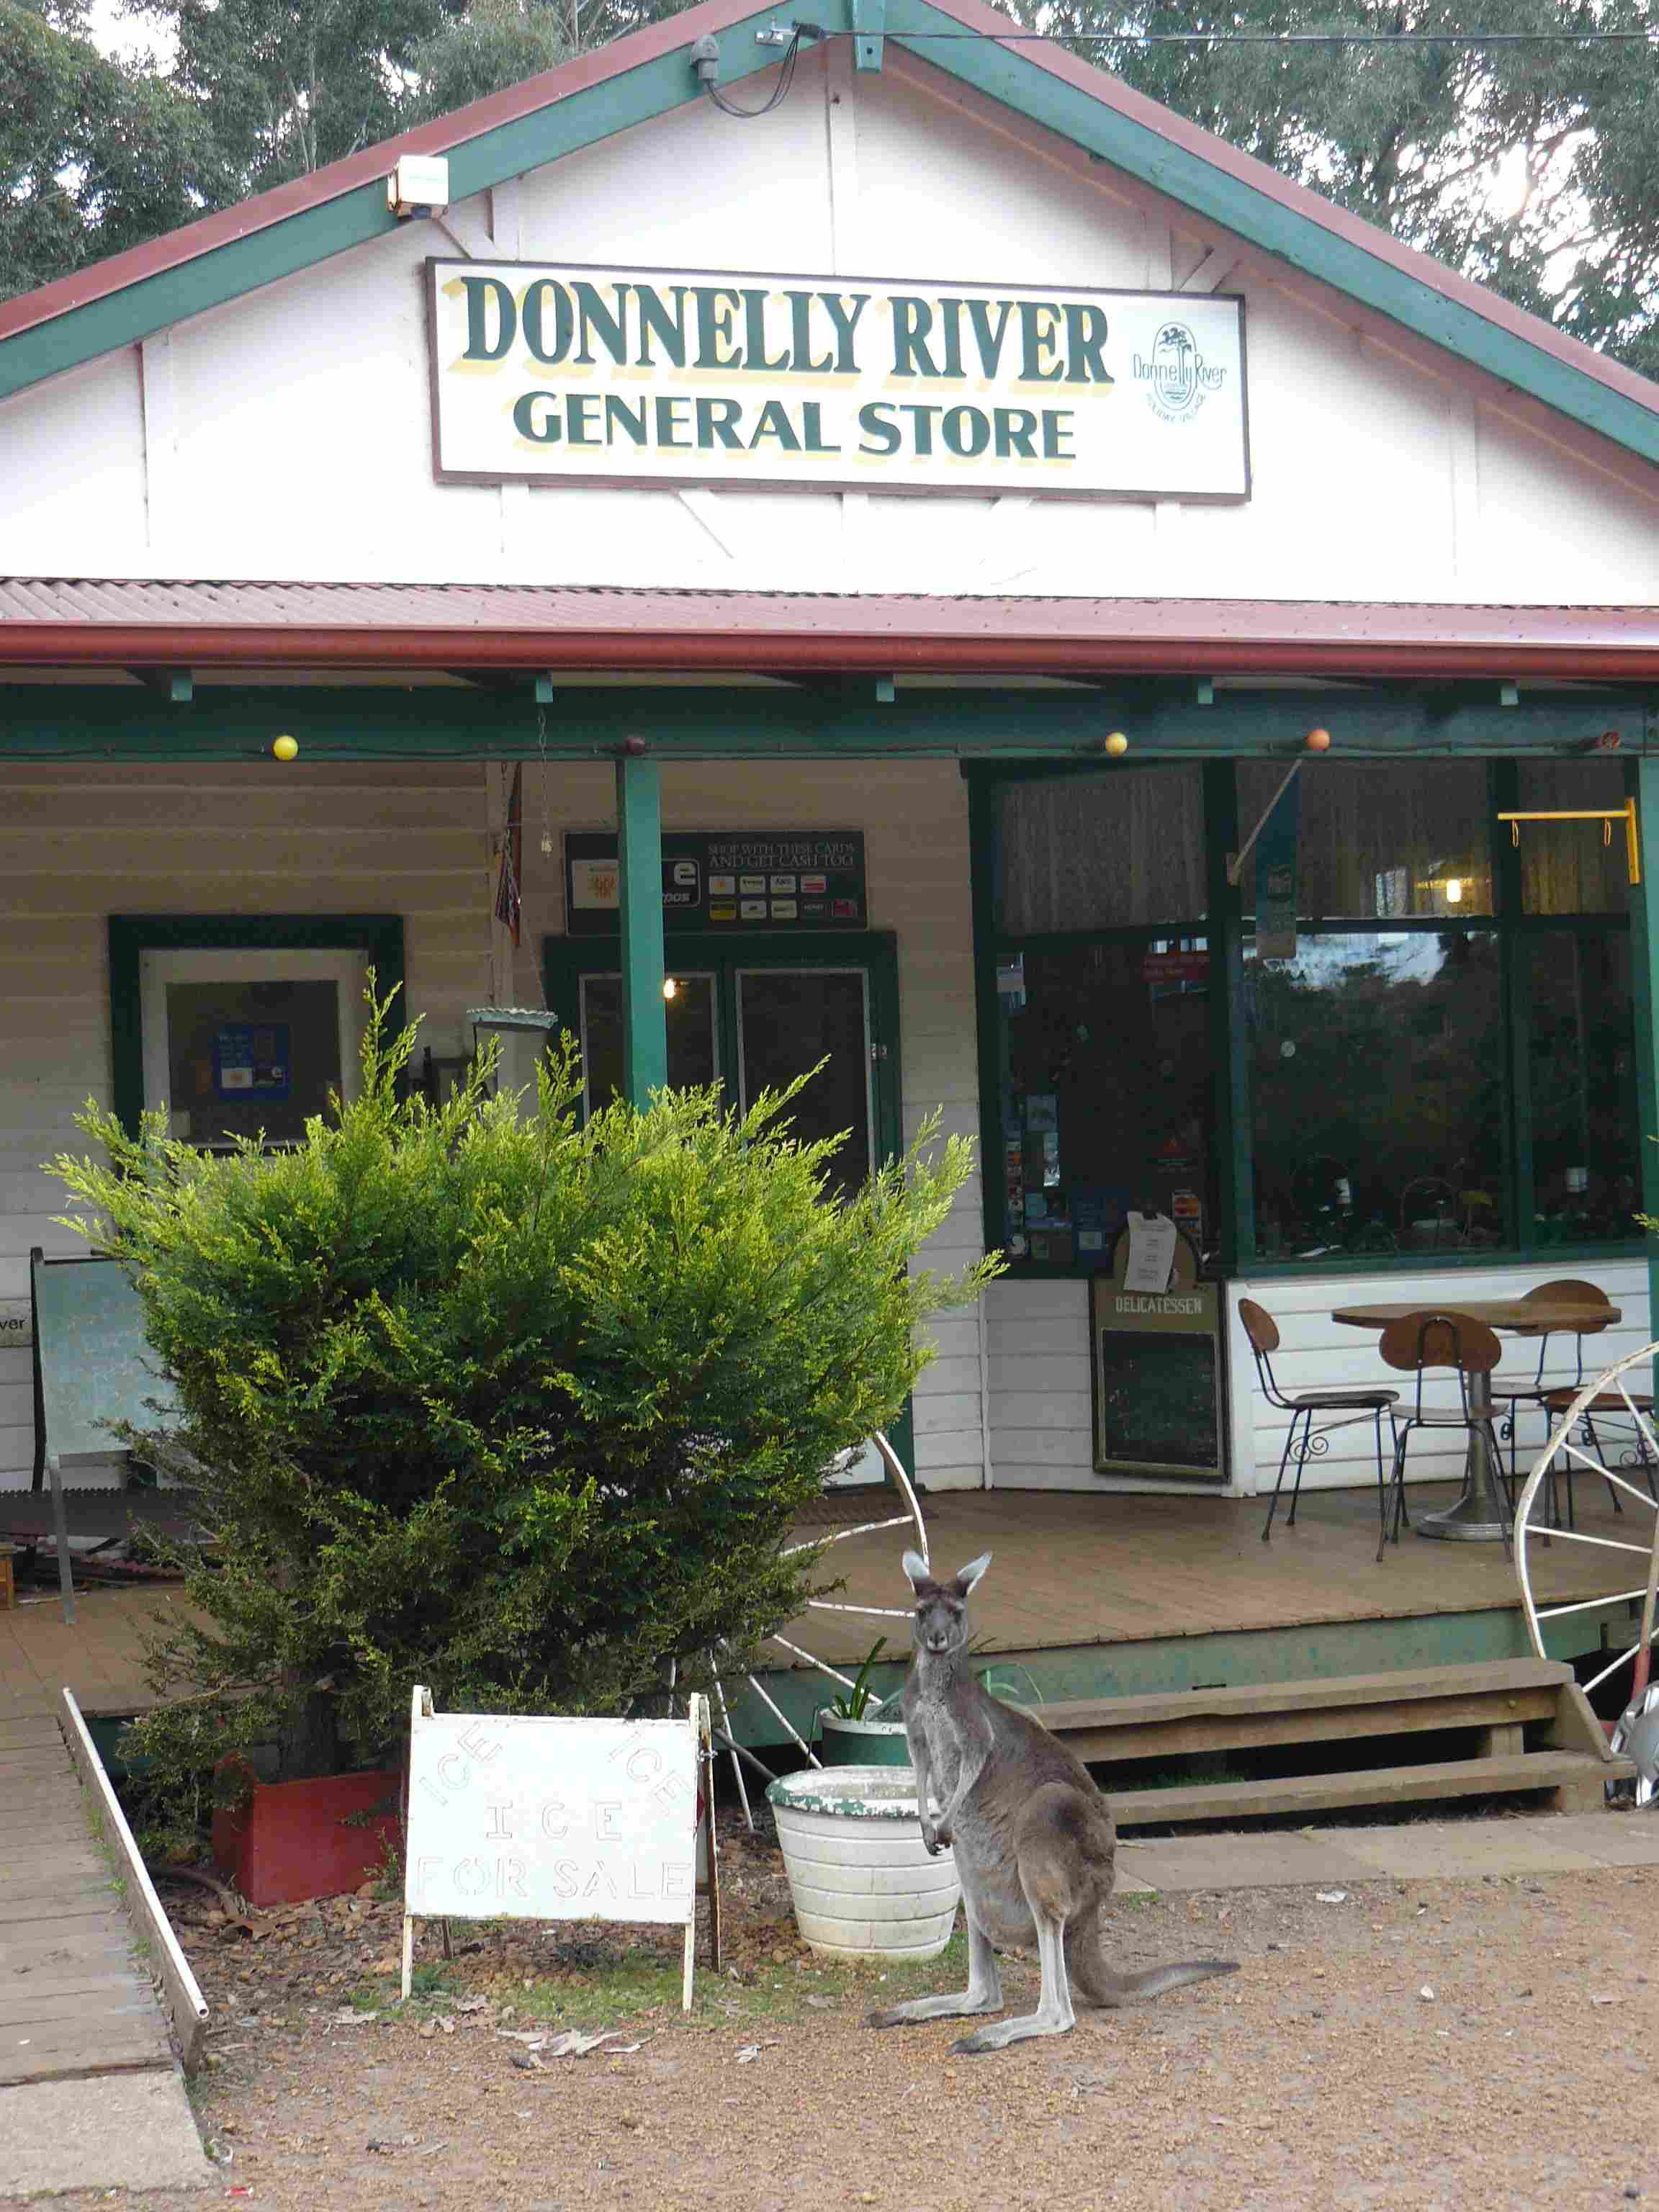 Donnelly River Village - more kangaroos, emus and lollies than you can poke a stick at (Warwick Sprawson)